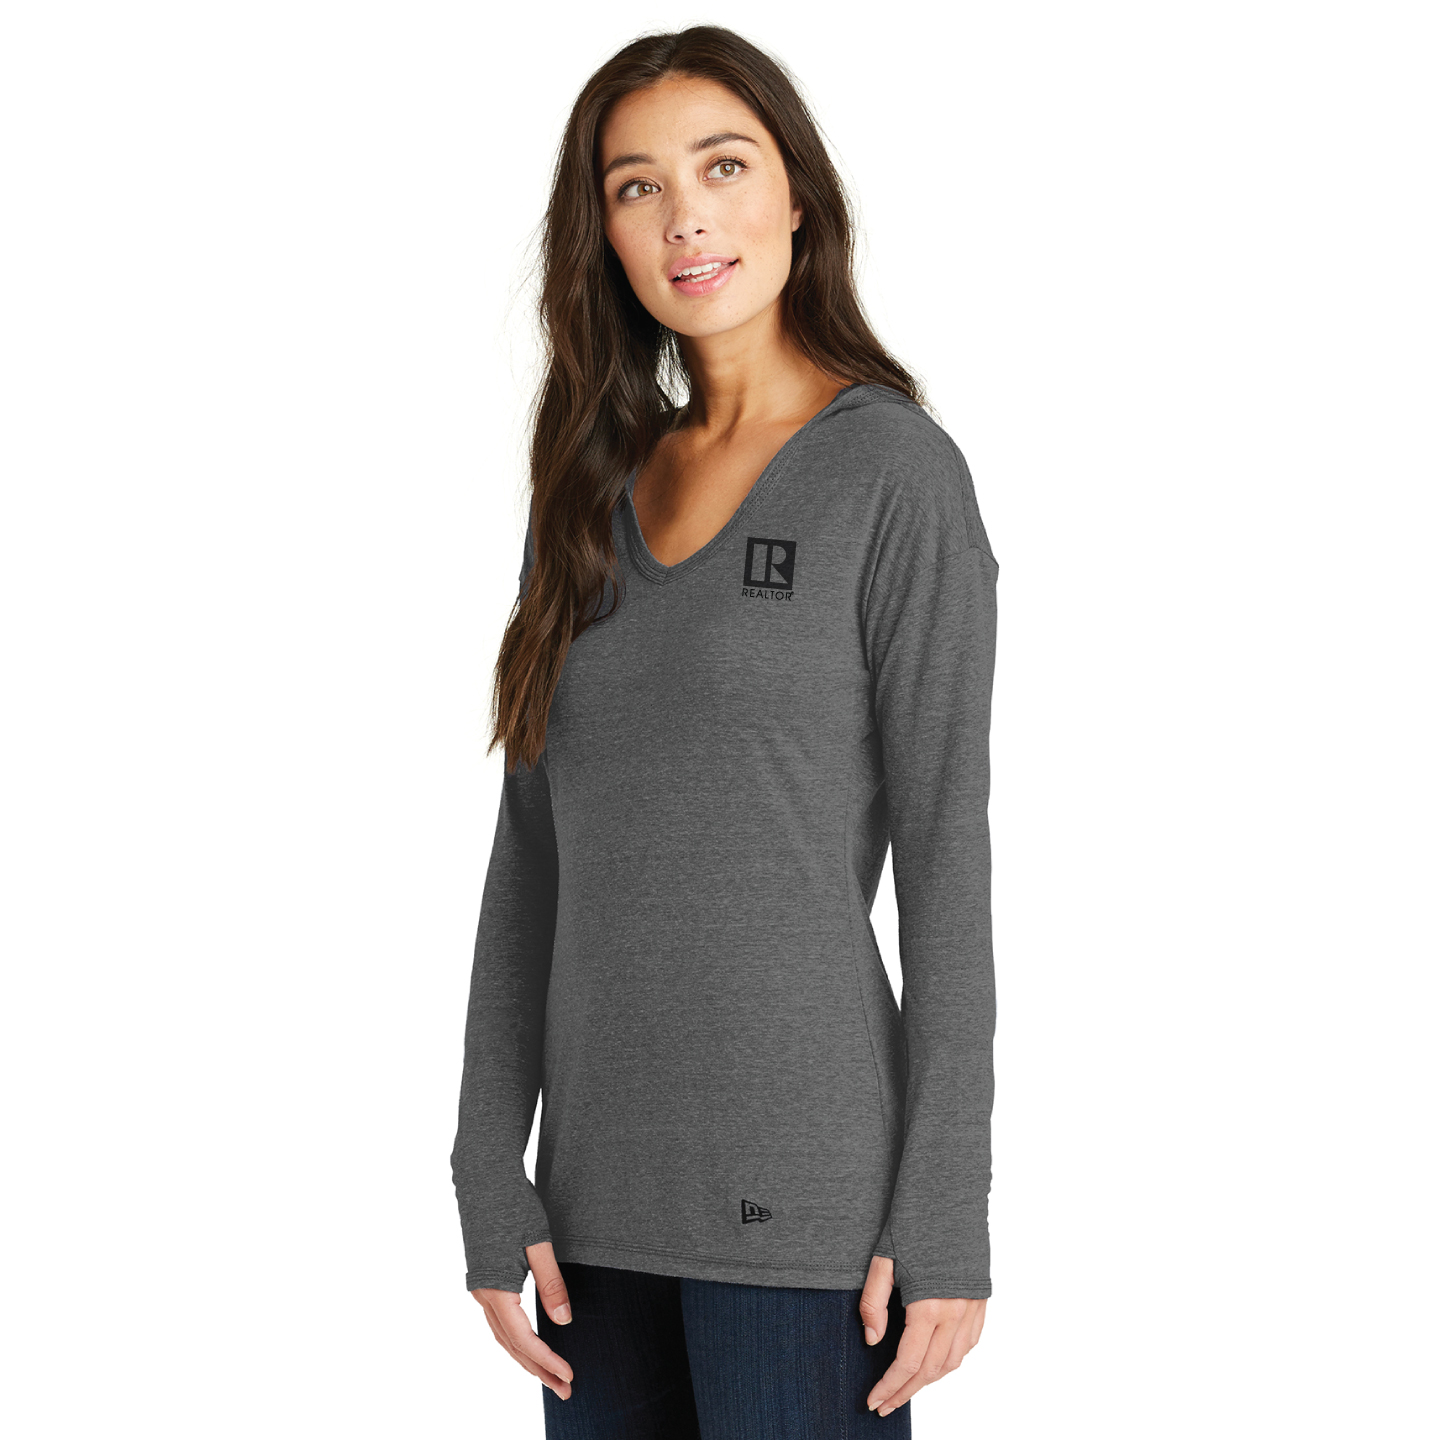 New Era® Ladies Performance Pullover Hoodie Tee hoodies, zip, ladies, news, eras, fleeces, jackets